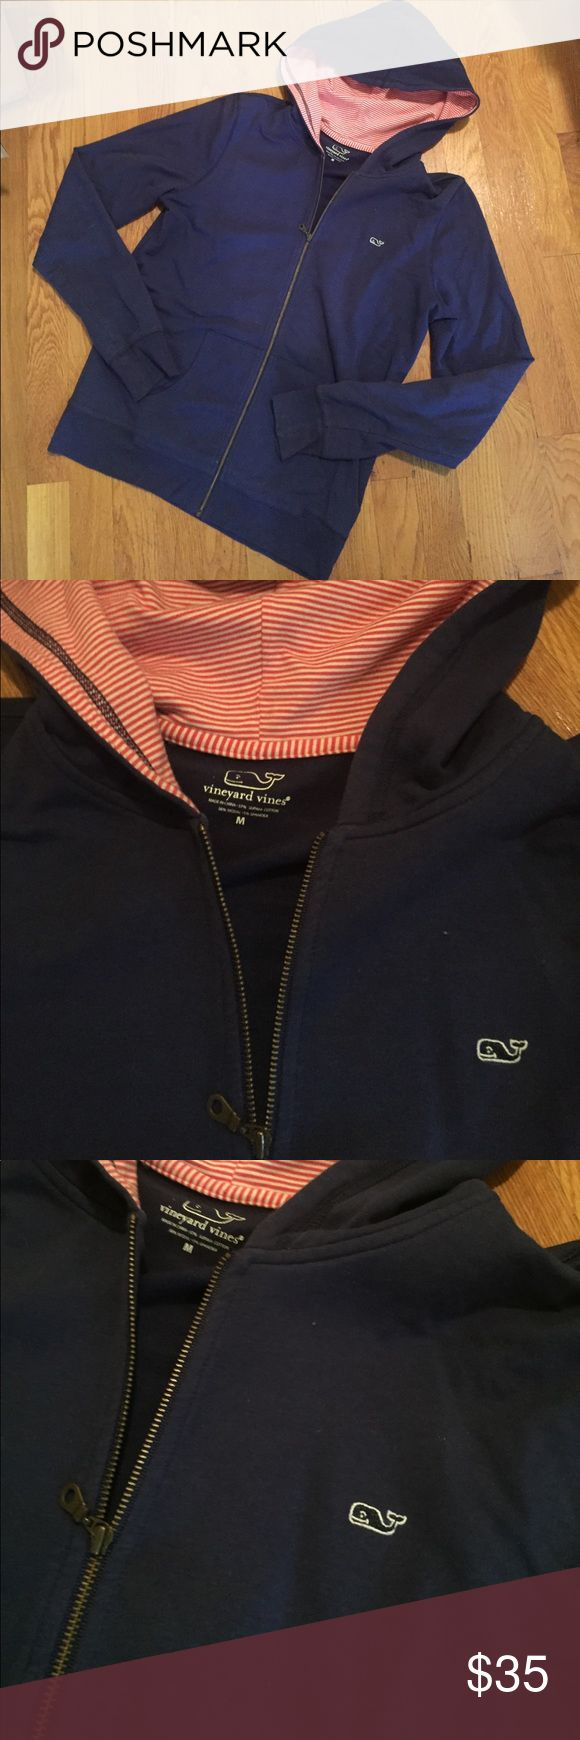 Vineyard vines size M navy zip up Navy/ white and red stripe zip up. Worn less than 5 times. Size medium. Vineyard Vines Tops Sweatshirts & Hoodies